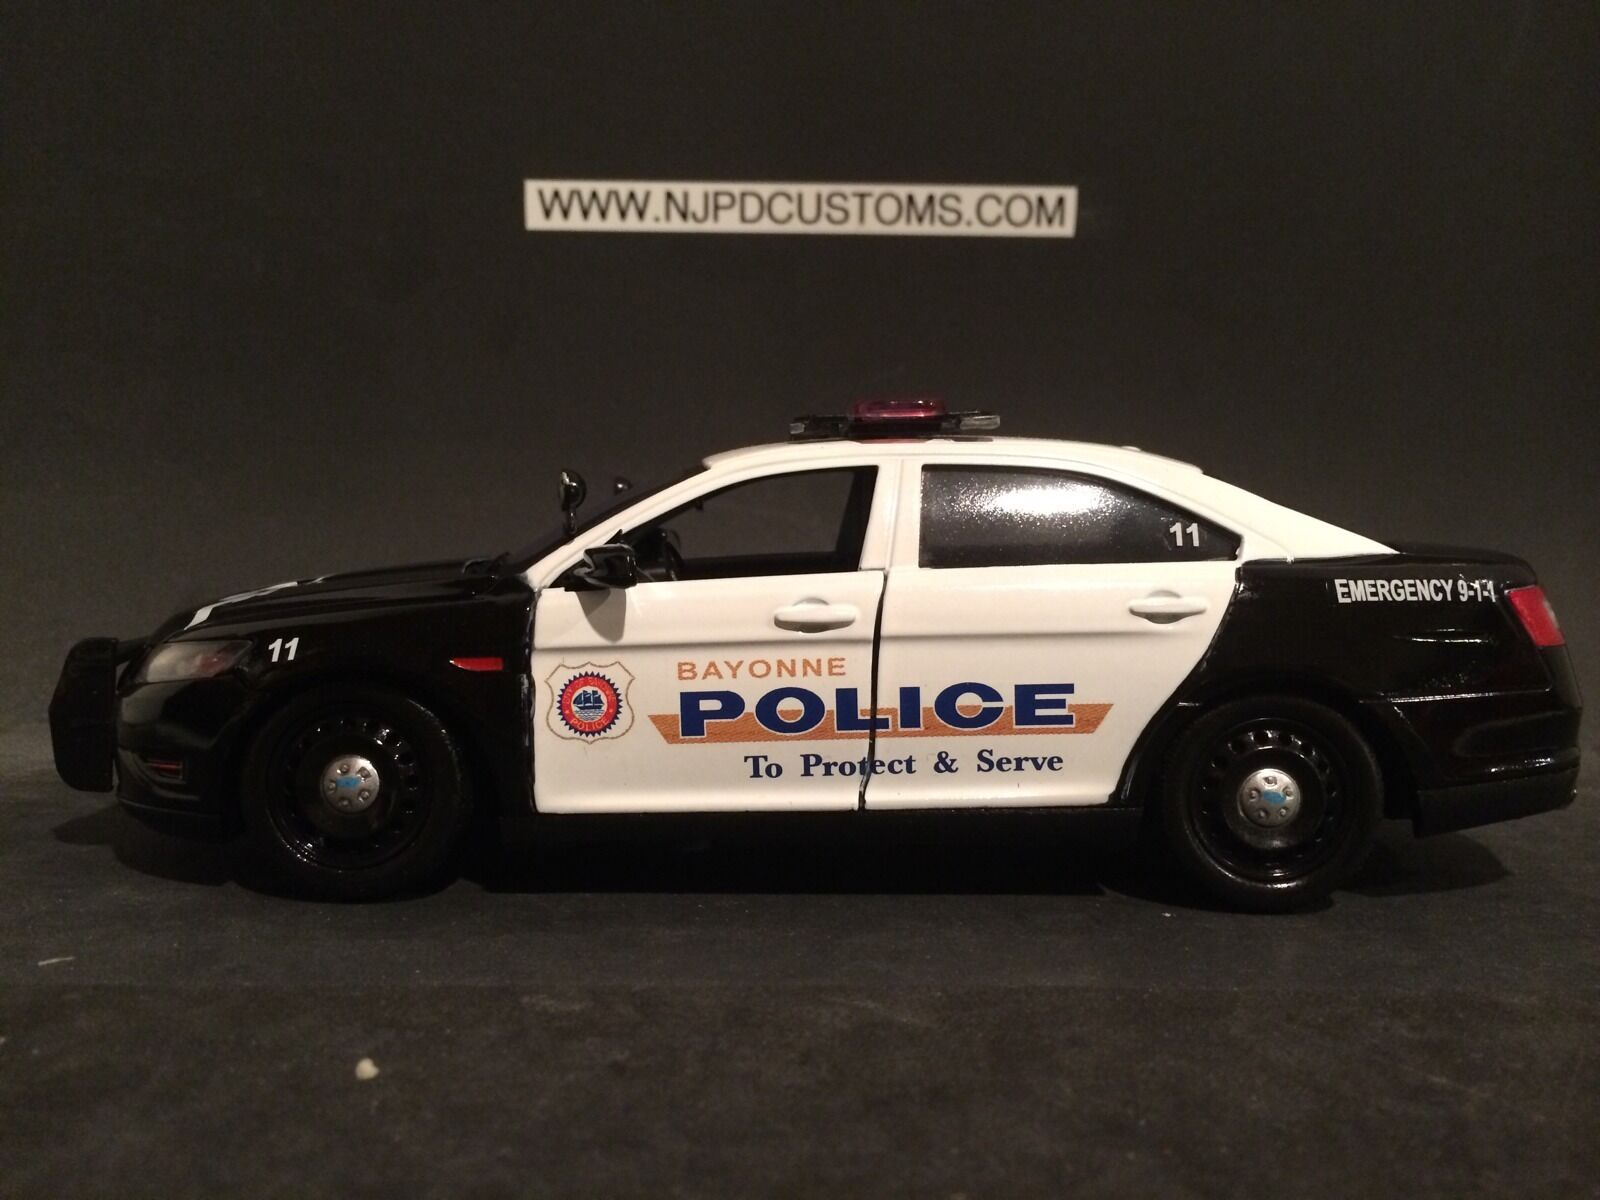 Bayonne Police NJ 1 24 Scale Replica Ford Interceptor Taurus Police Cruiser